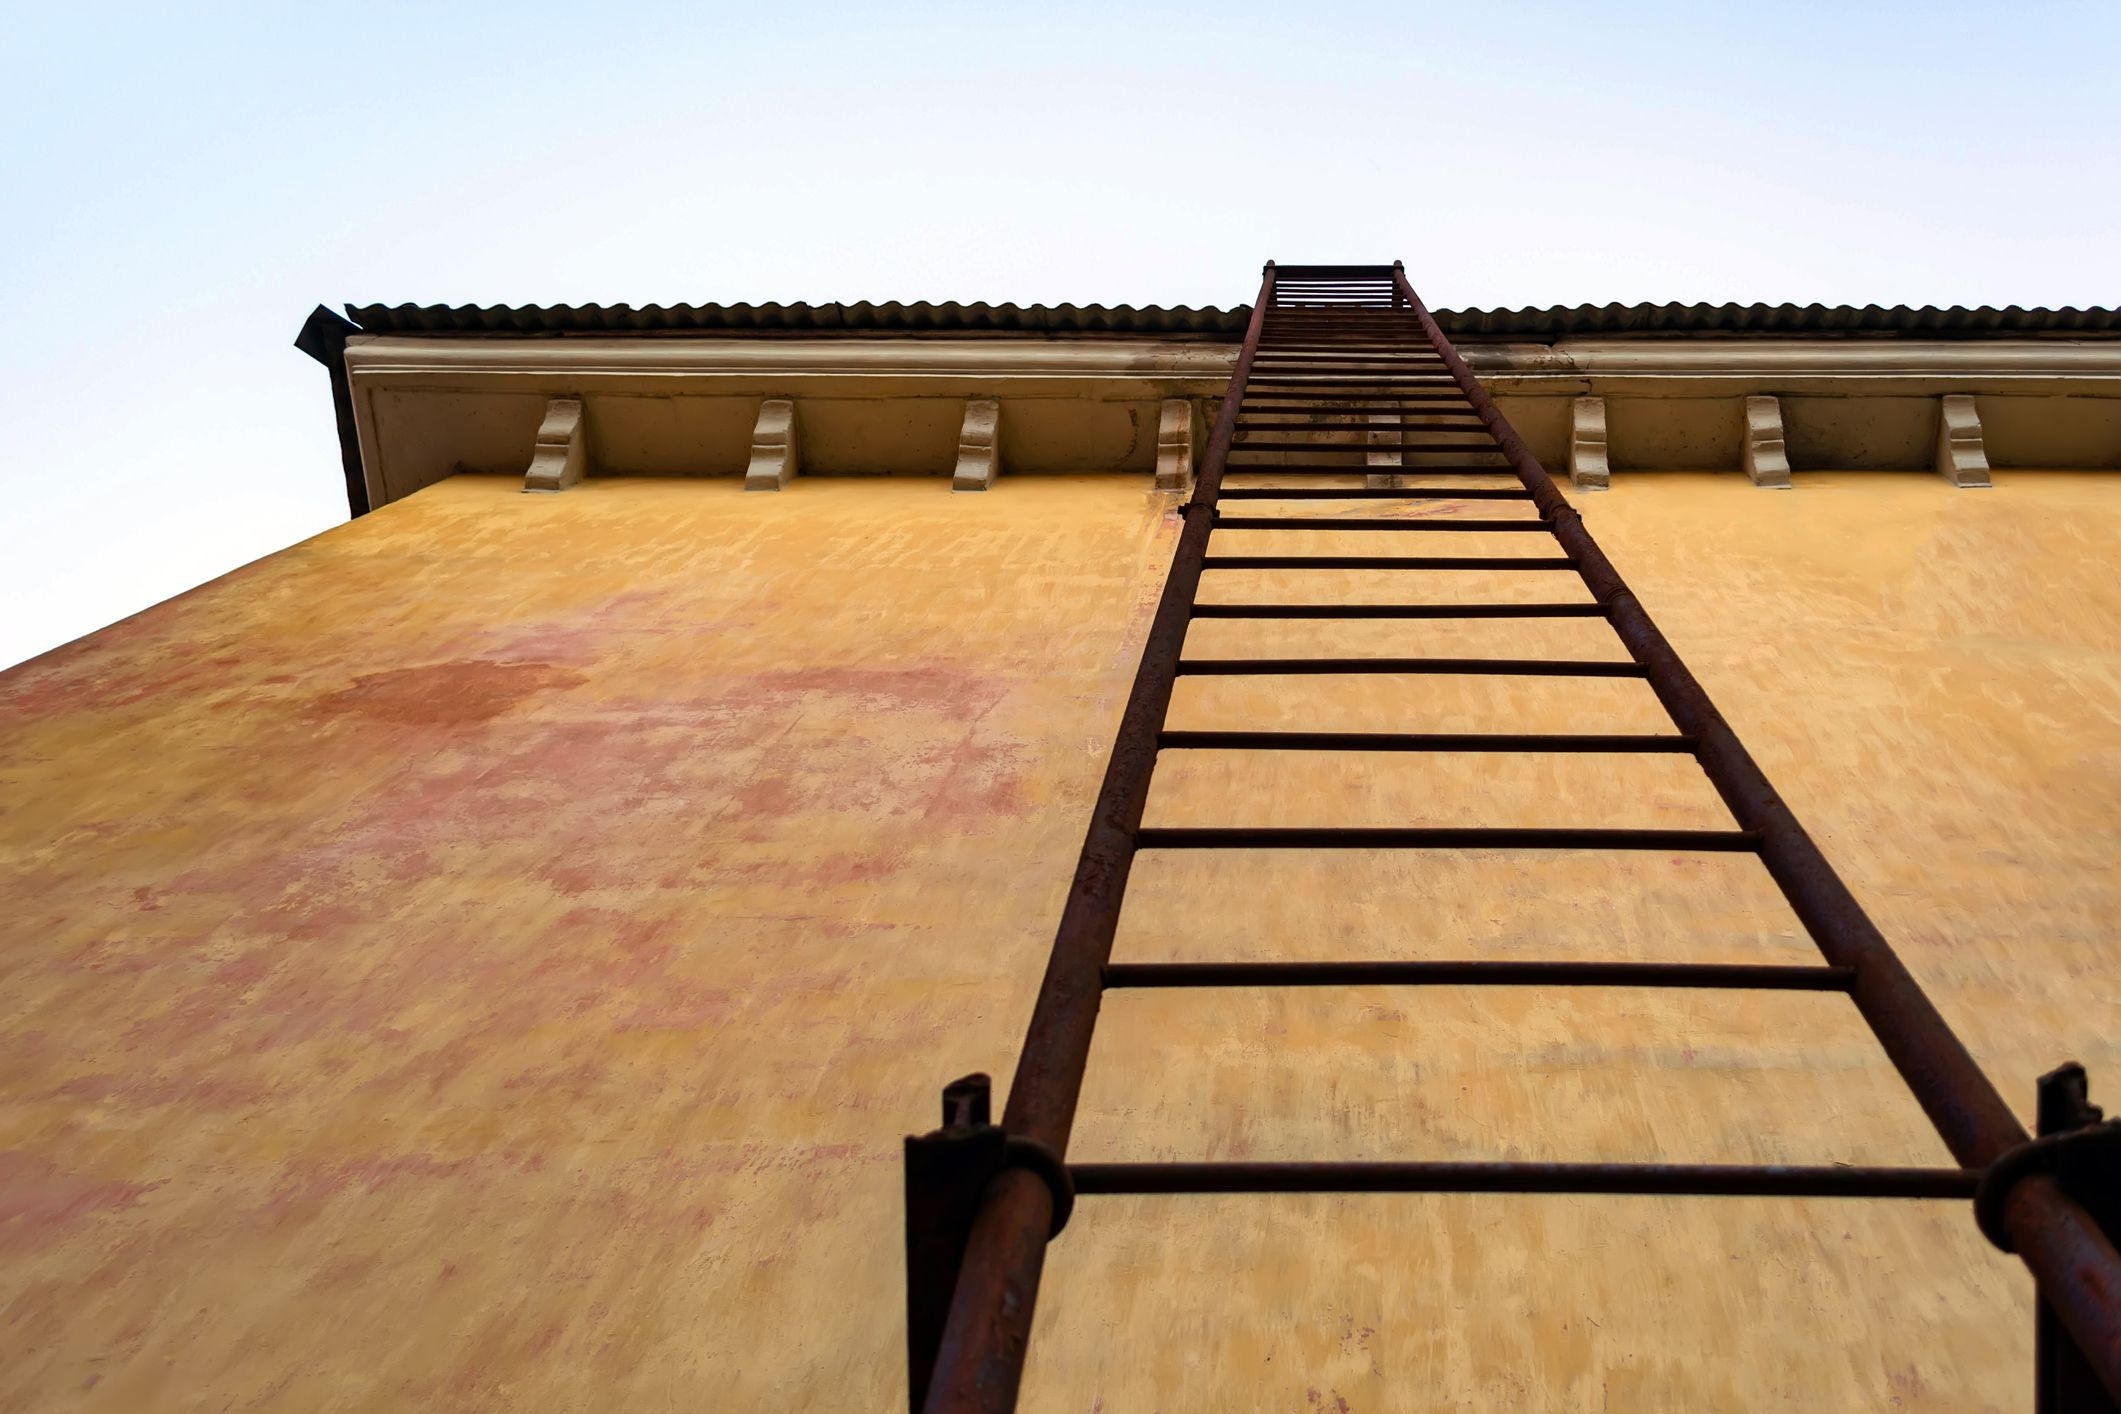 The 8 Best Fire Escape Ladders Of 2020 According To An Expert | Metal Fire Escape Stairs For Sale | Low Poly | Stair Treads | Building | Wrought Iron | Bim Cad